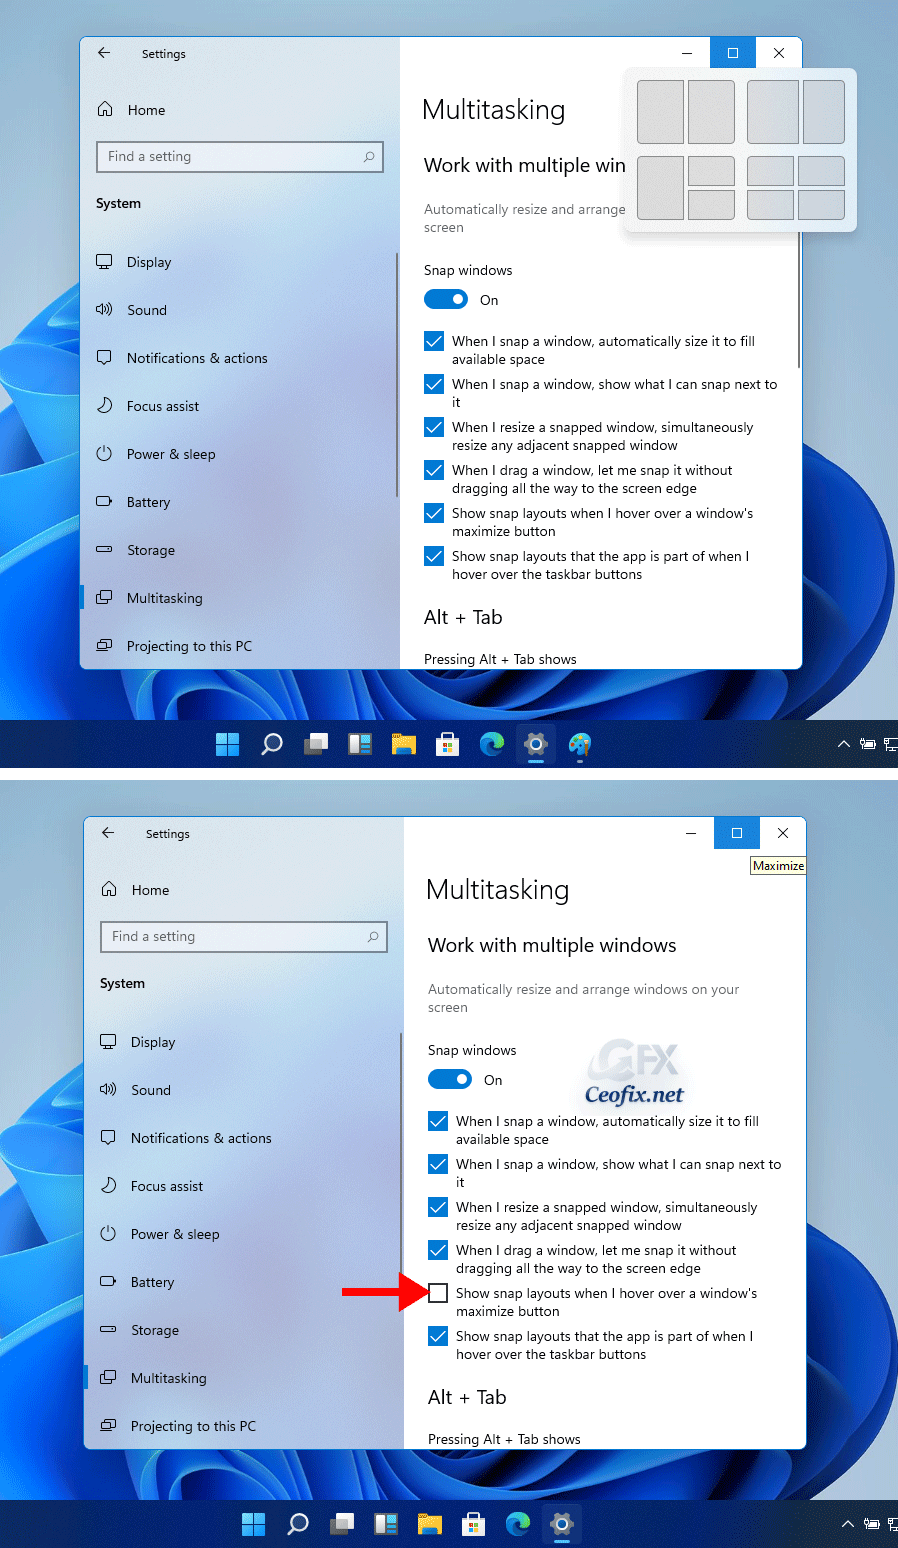 How to Disable Snap Layouts for Maximize Button in Windows 11